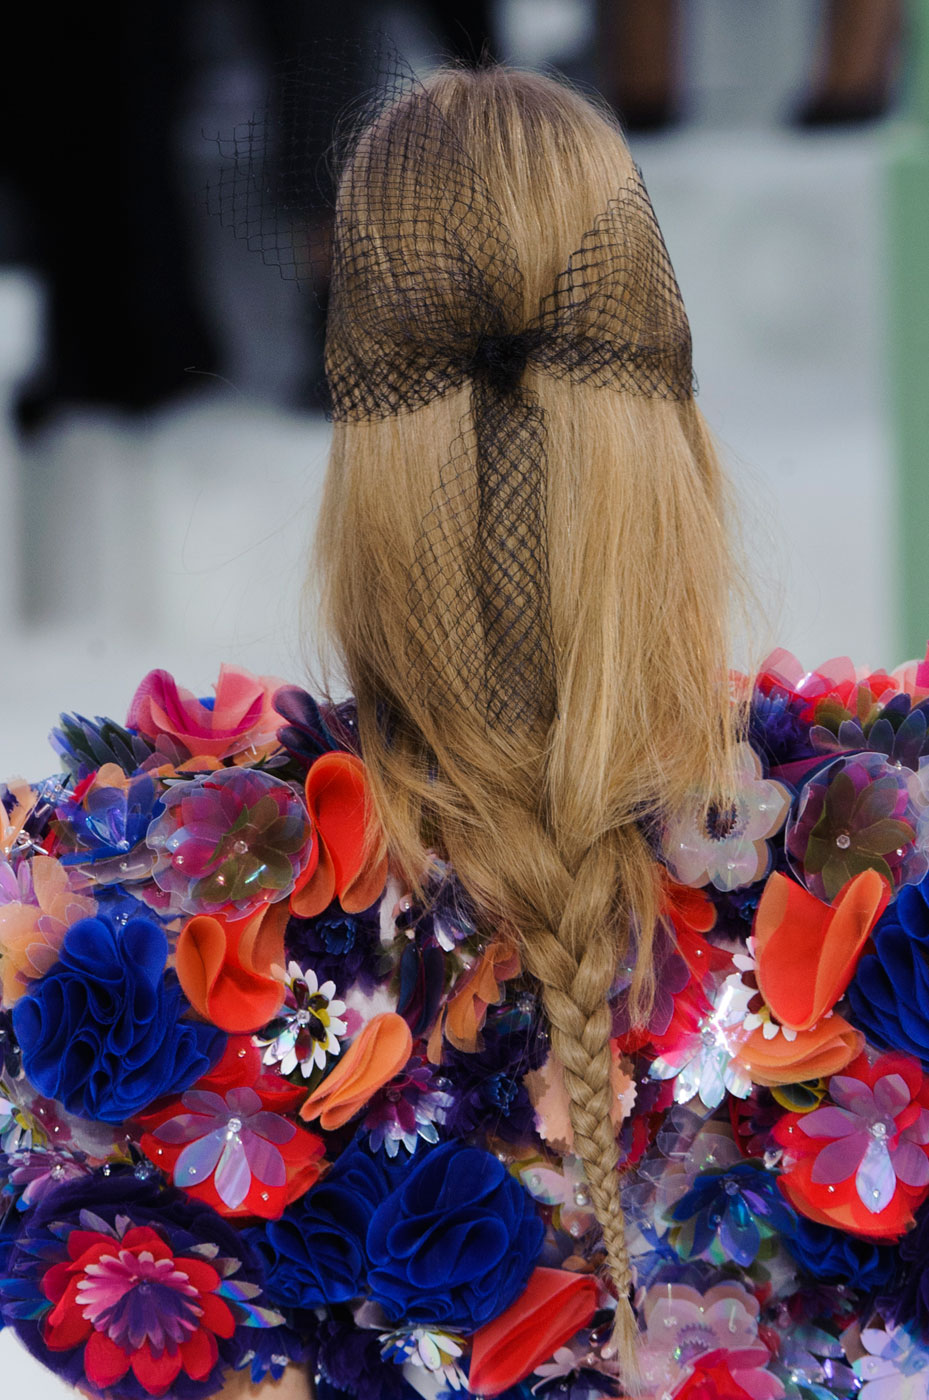 Chanel-fashion-runway-show-close-ups-haute-couture-paris-spring-summer-2015-the-impression-082